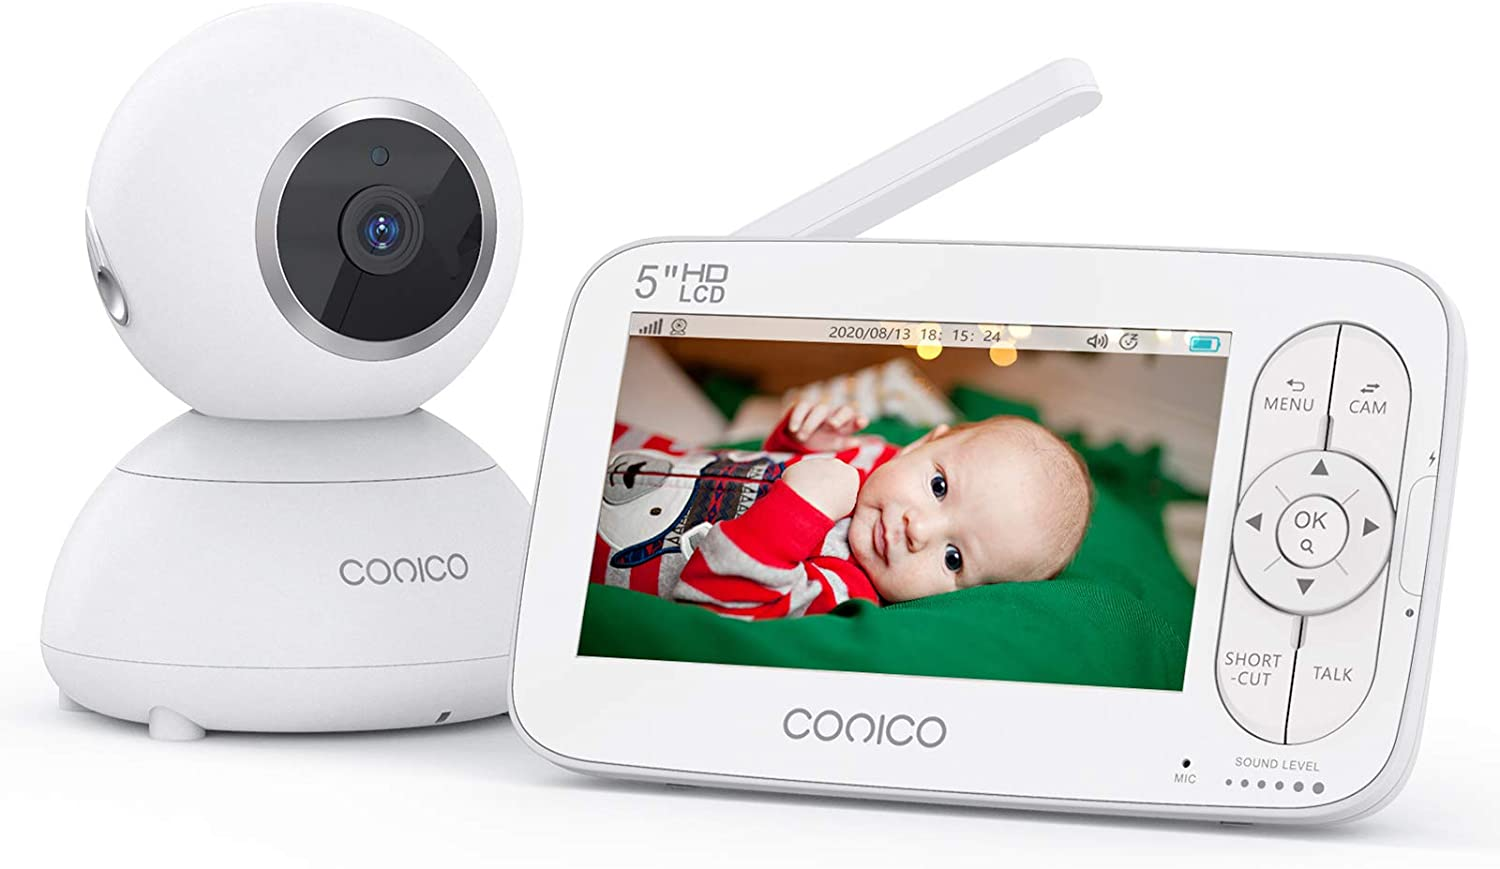 "Baby Monitor, Conico Video Baby Monitor with Camera, No WiFi, 5"" HD LCD Large Screen Display 960ft Range Rechargeable Battery Two Way Audio 2X Zoom Invisible IR Night Vision Temperature Monitoring"